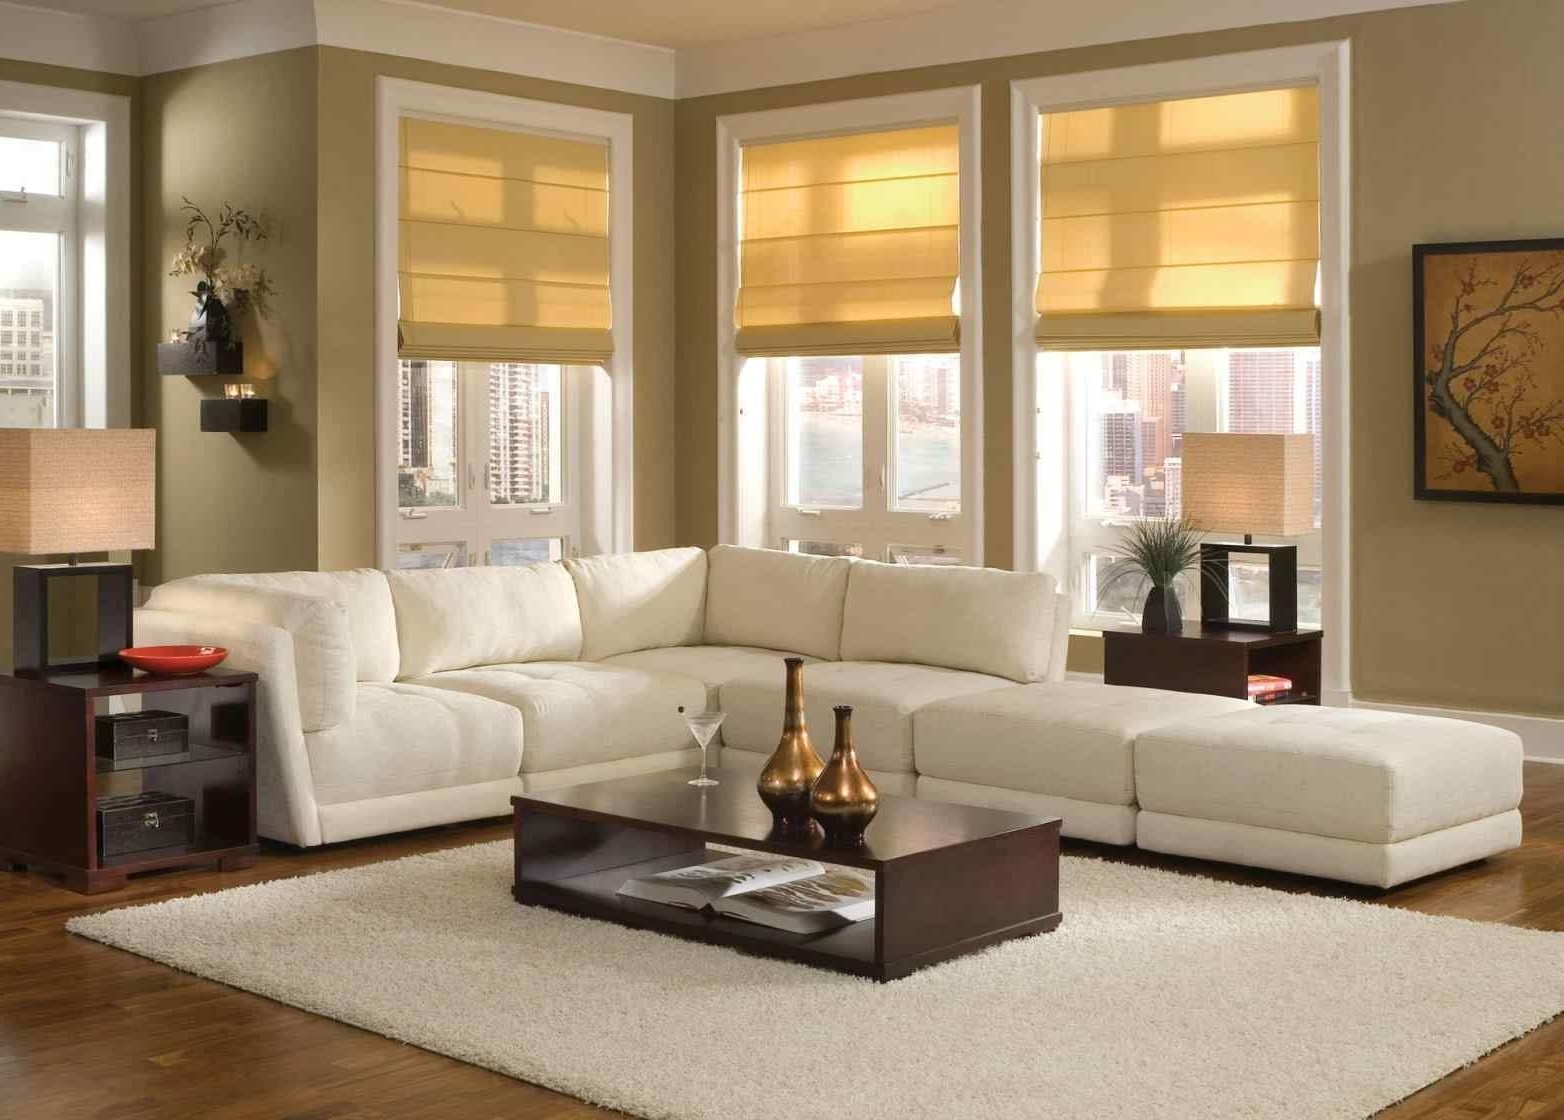 Sectional Sofas For Small Living Rooms Within Favorite The Images Collection Of Designing Incredible Living Room (View 9 of 15)